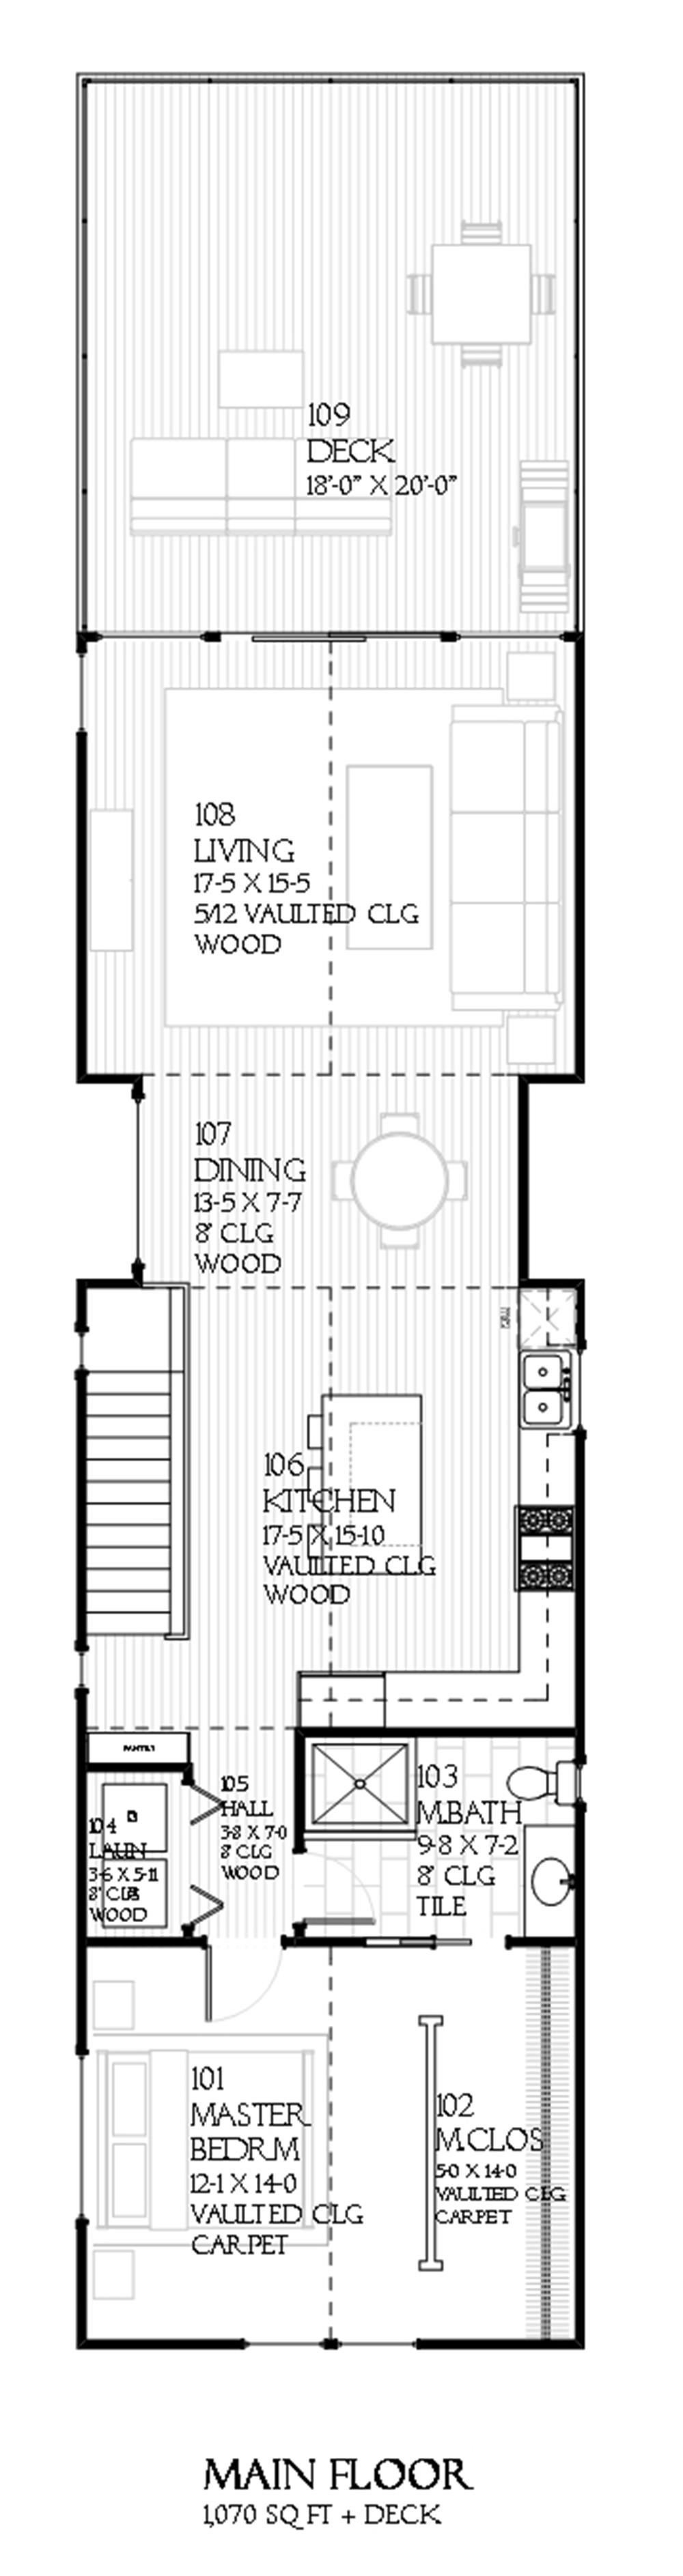 168-1102 house plan upper level